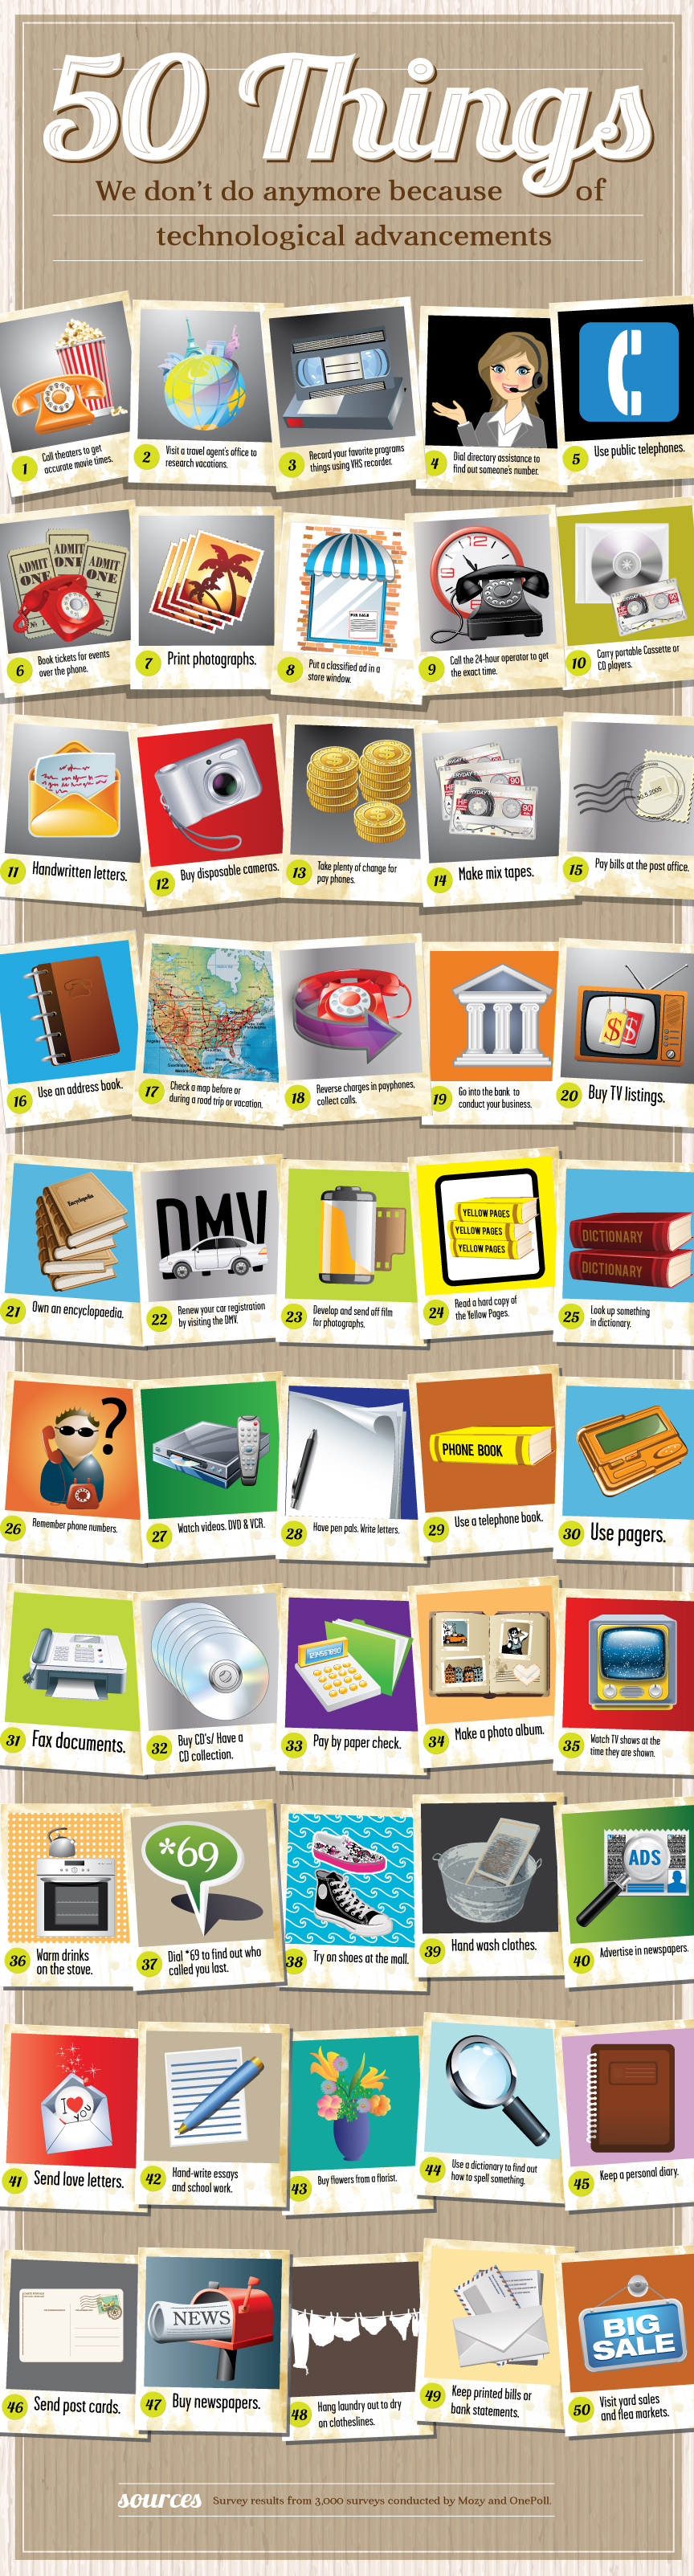 50 Things We No Longer Do Thanks to Technology [Infographic] | inspirationfeed.com